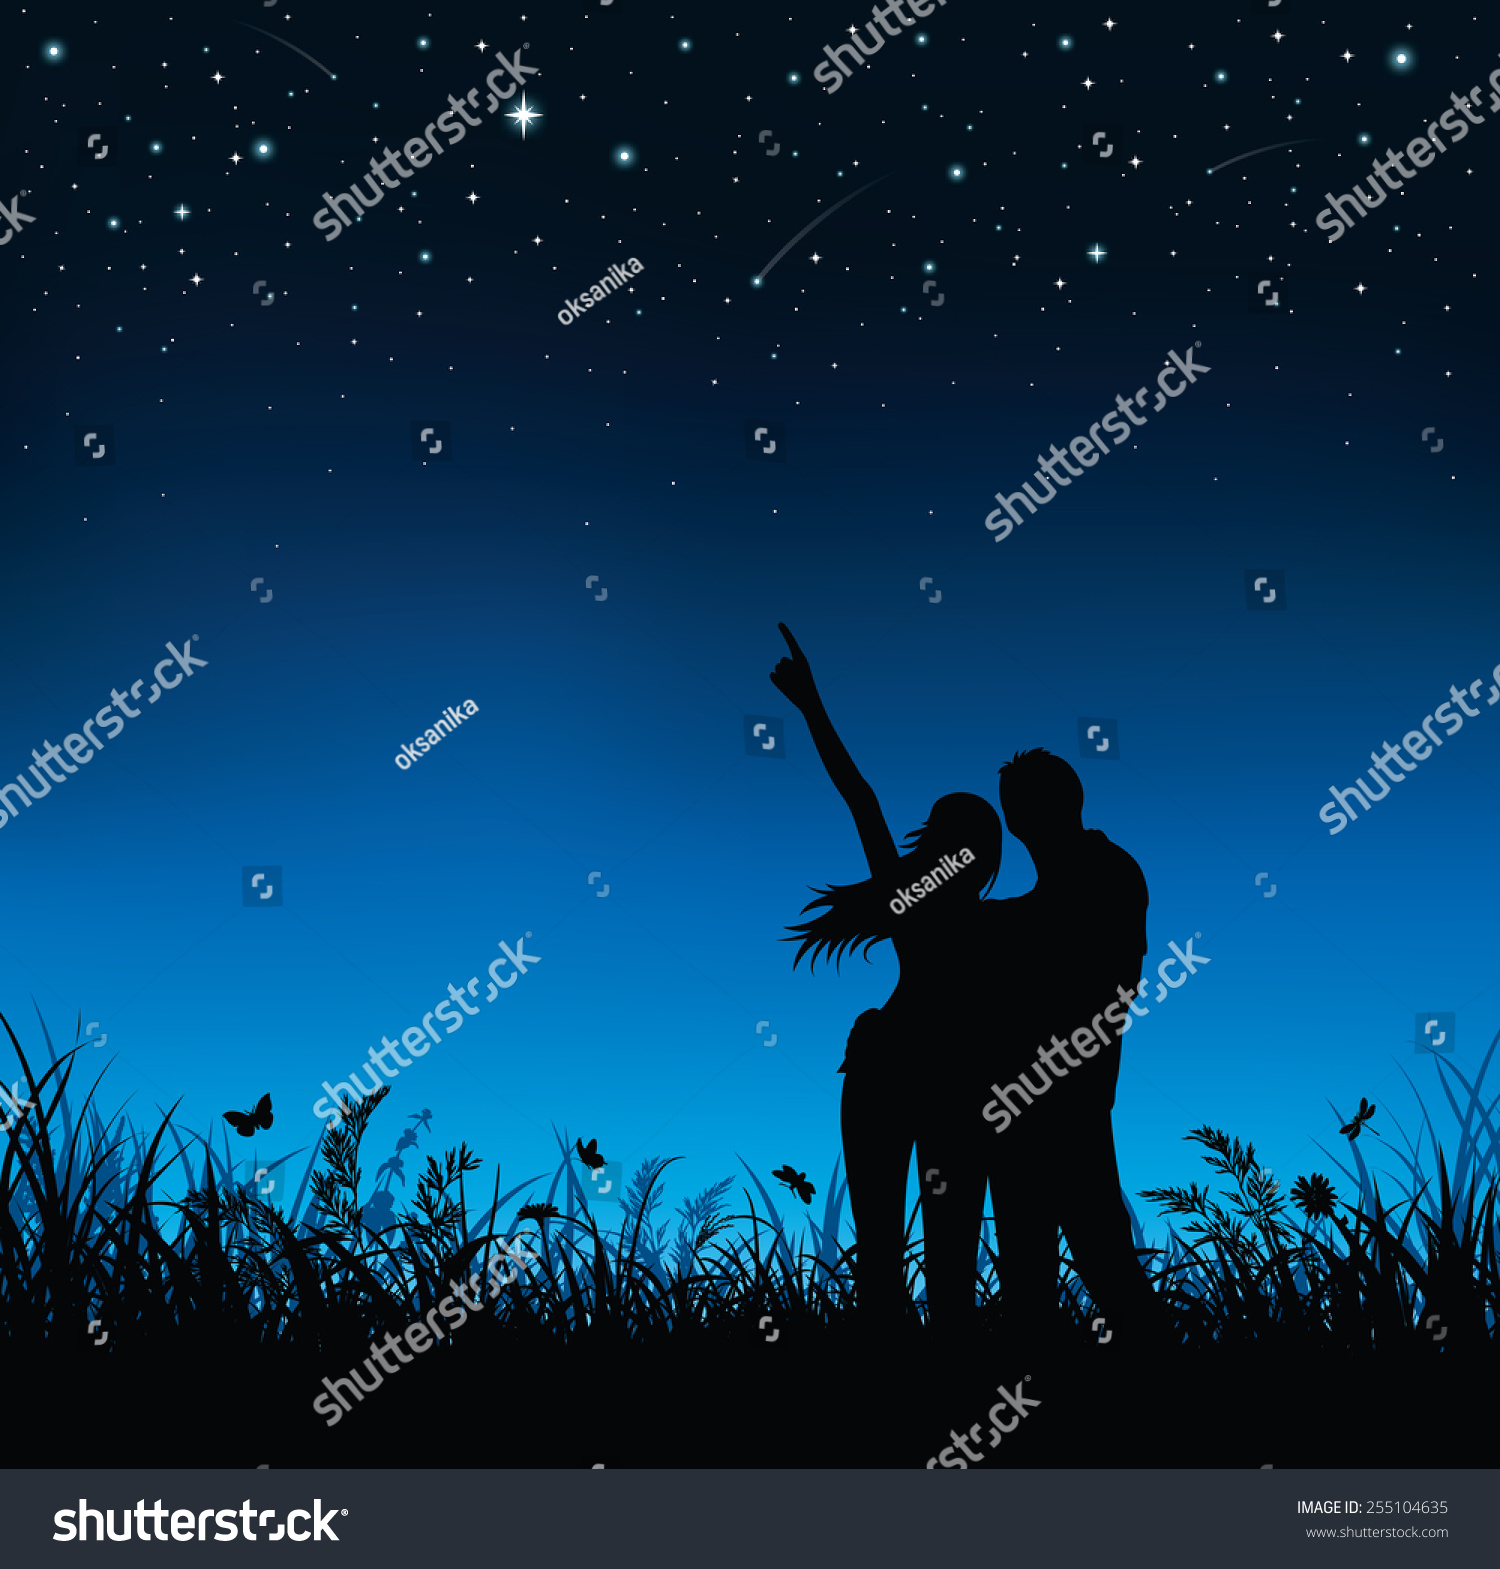 stars in the sky dating site Used by over 30 million people world-wide, star chart provides a magical star gazing experience like no other you can now have a virtual planetarium in.